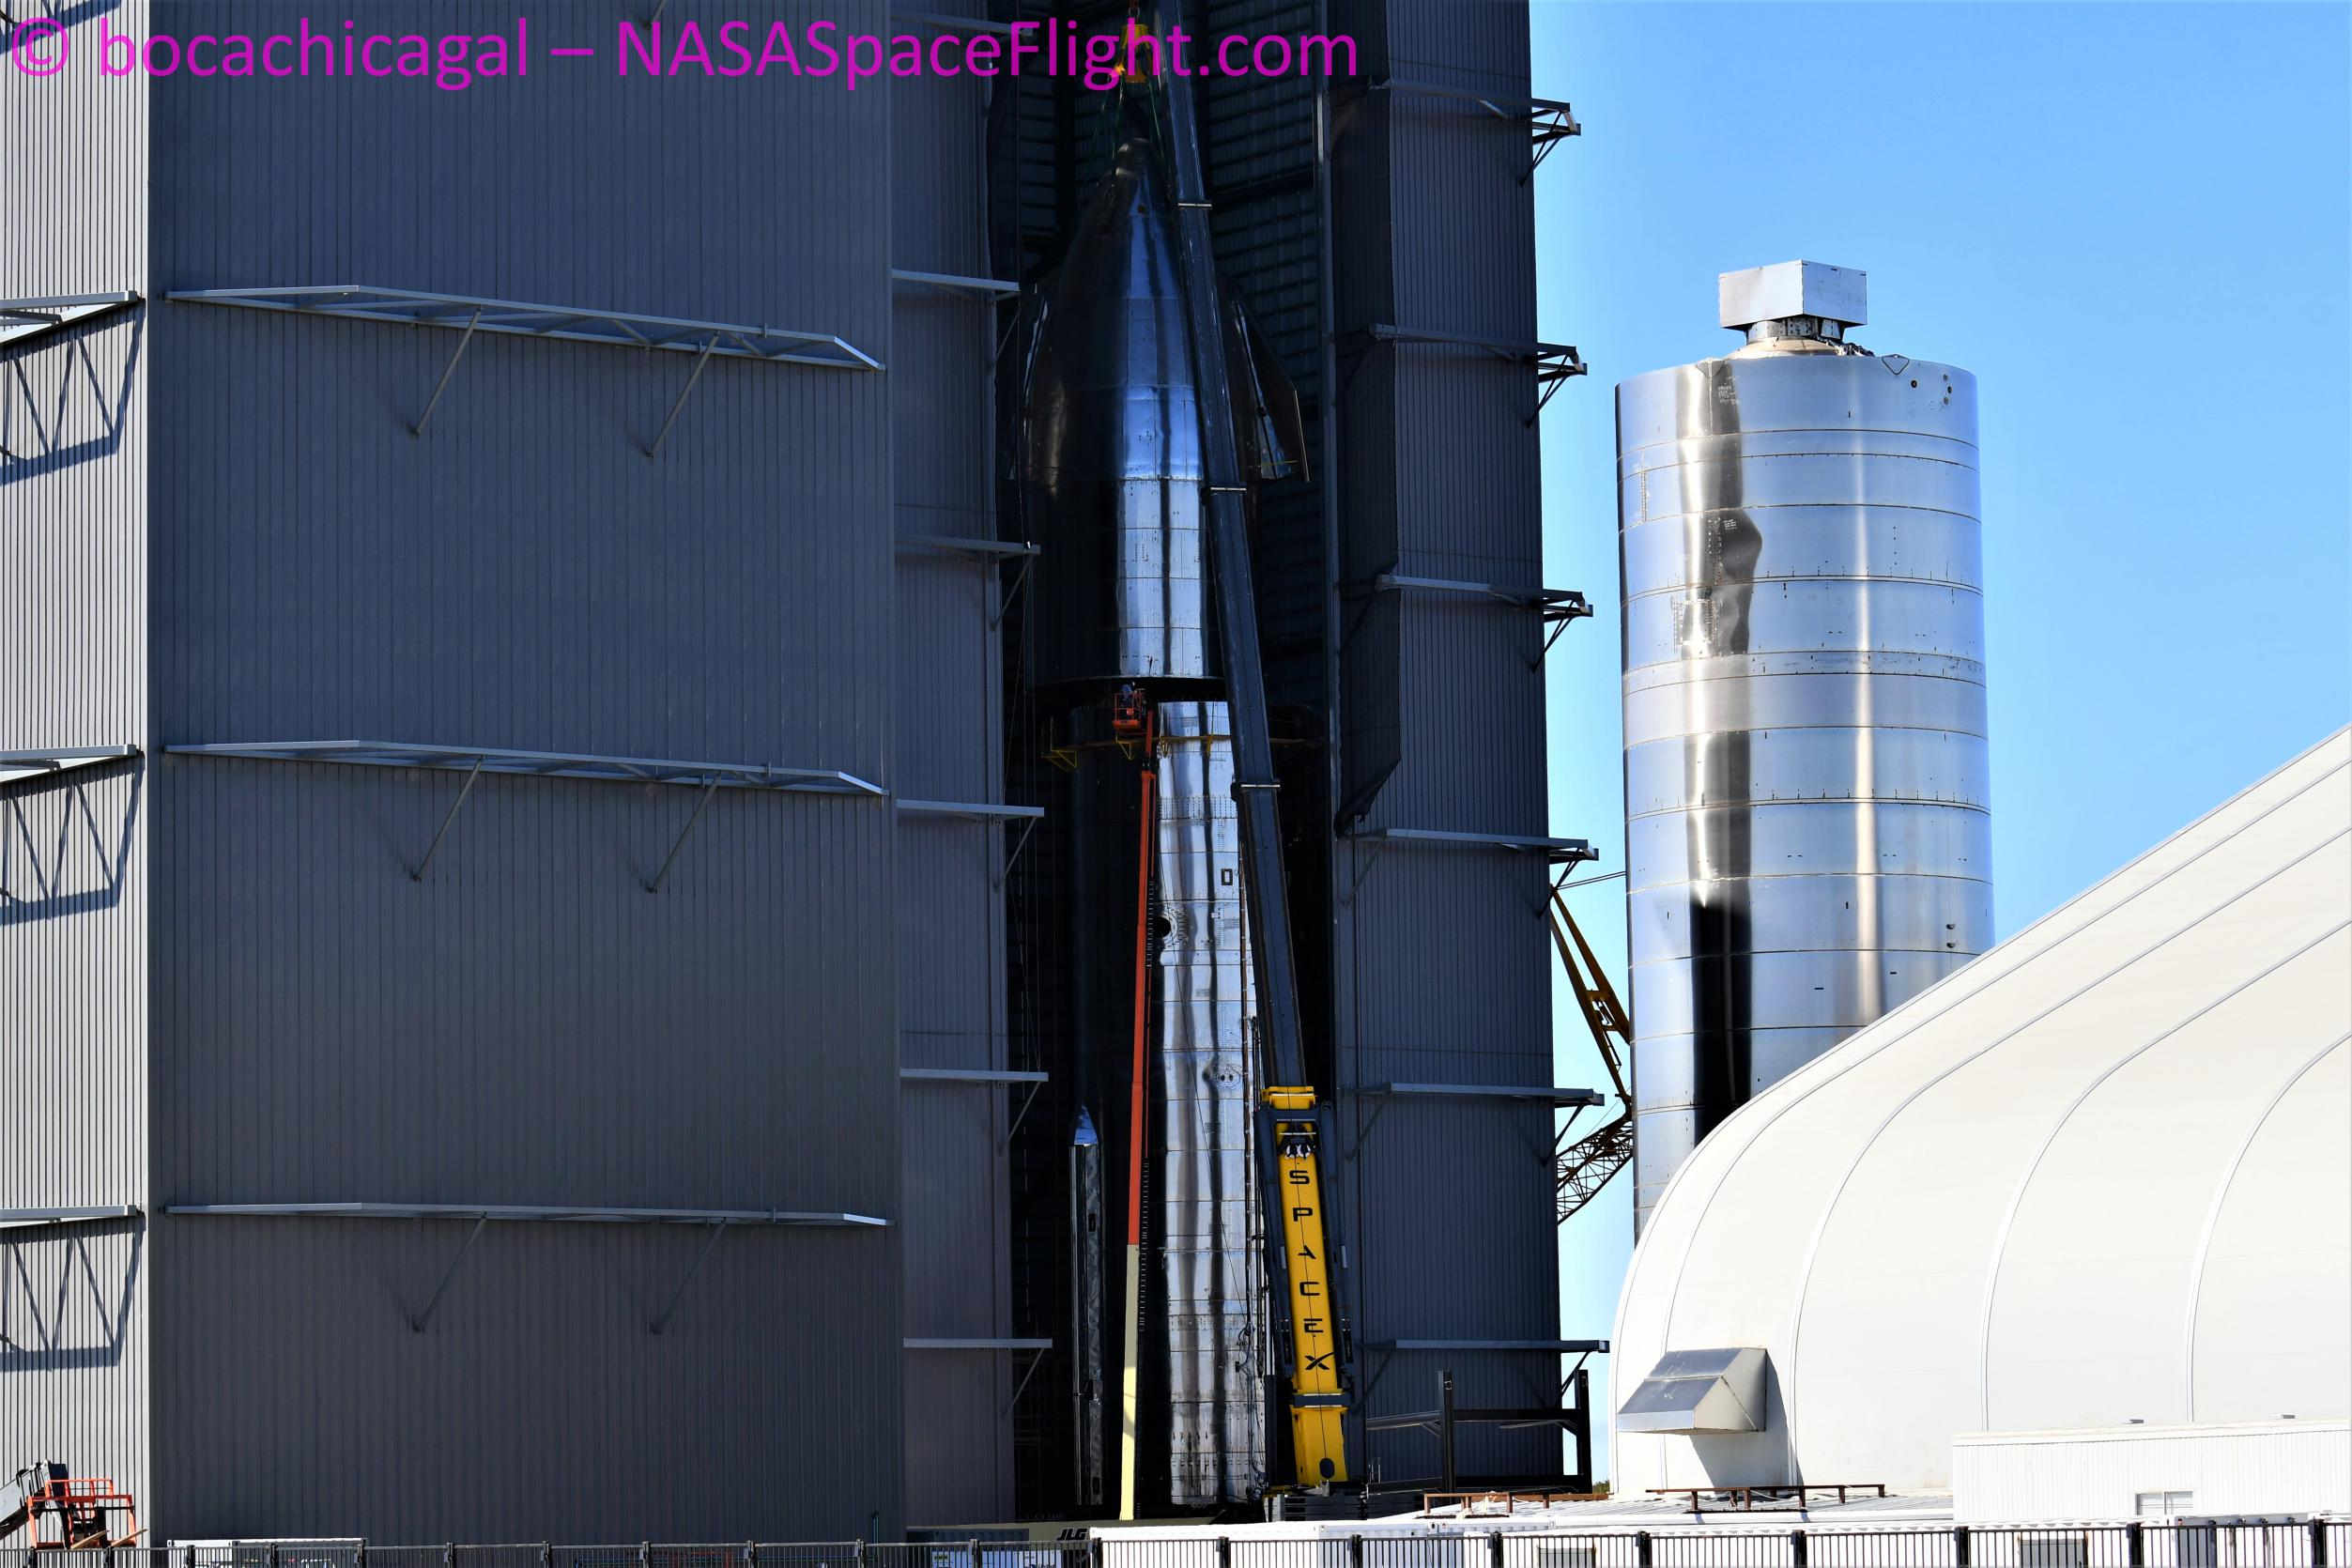 Starship Boca Chica 010221 (NASASpaceflight – bocachicagal) SN10 nose install 5 (c)